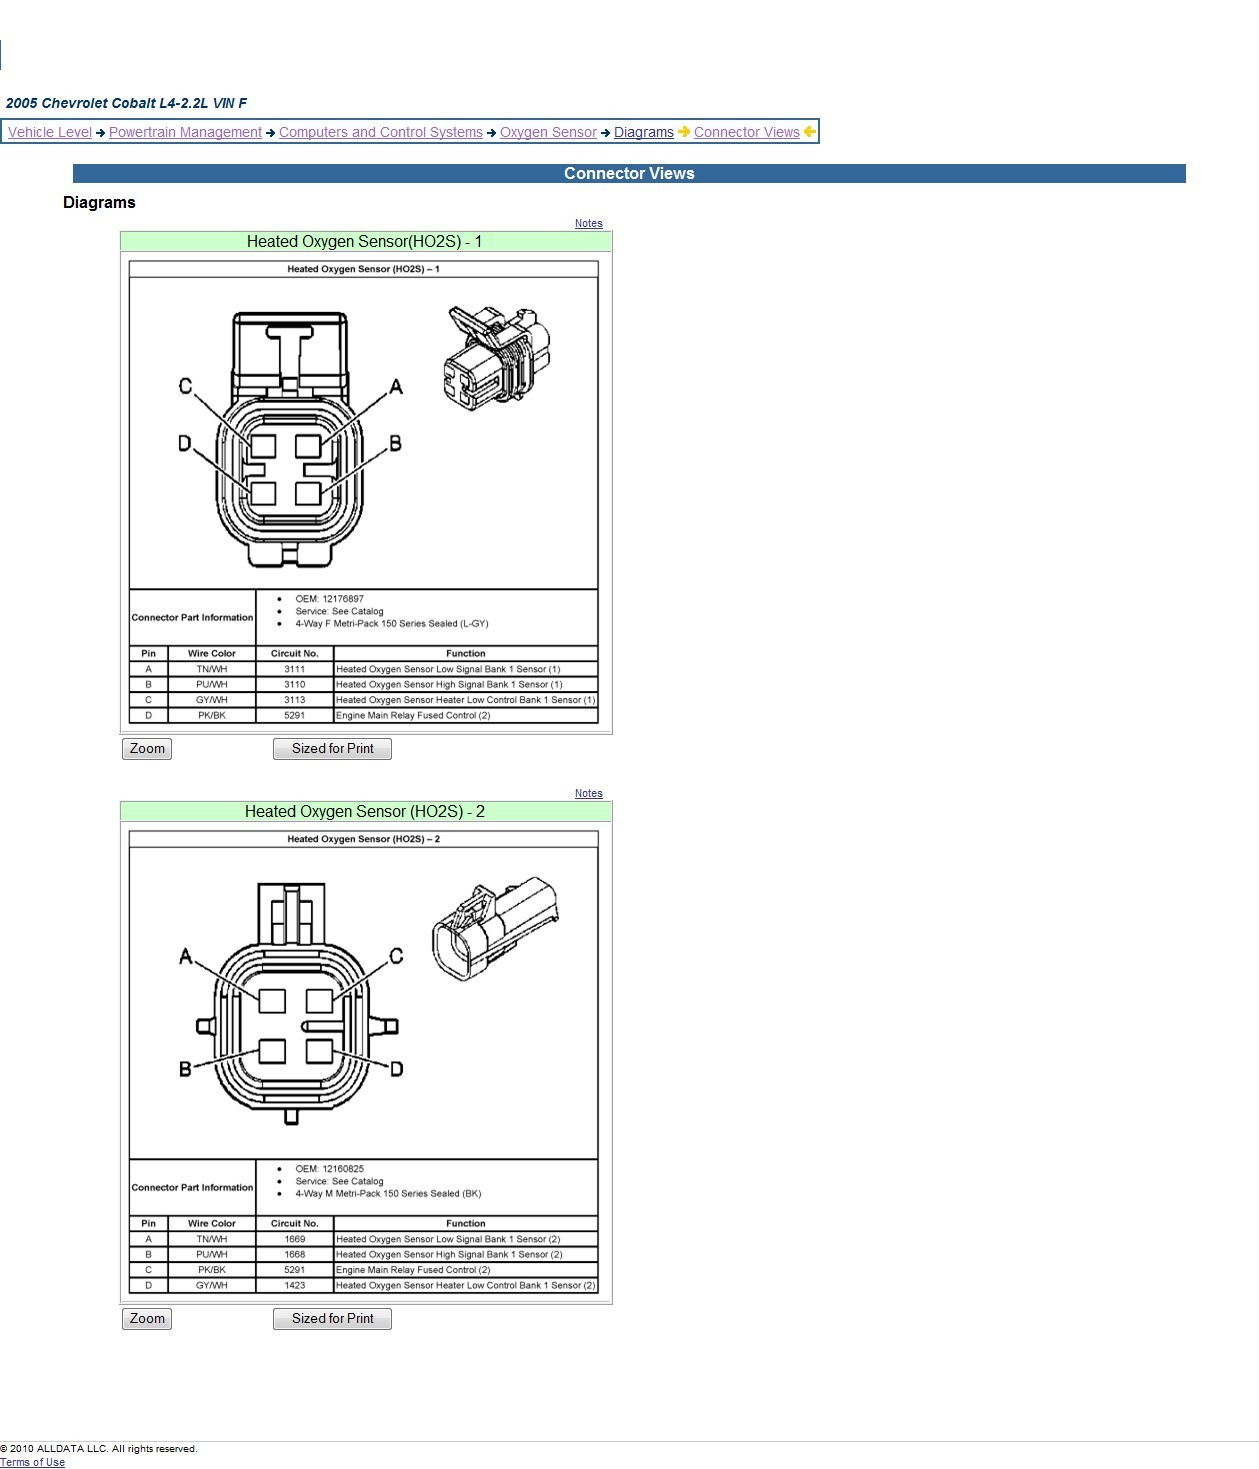 4 Wire Oxygen Sensor Wiring Diagram Image 1987 Camaro Fuse Honda Civic O2 Also 2005 Chevy C5500 Rh Optimalcad Co